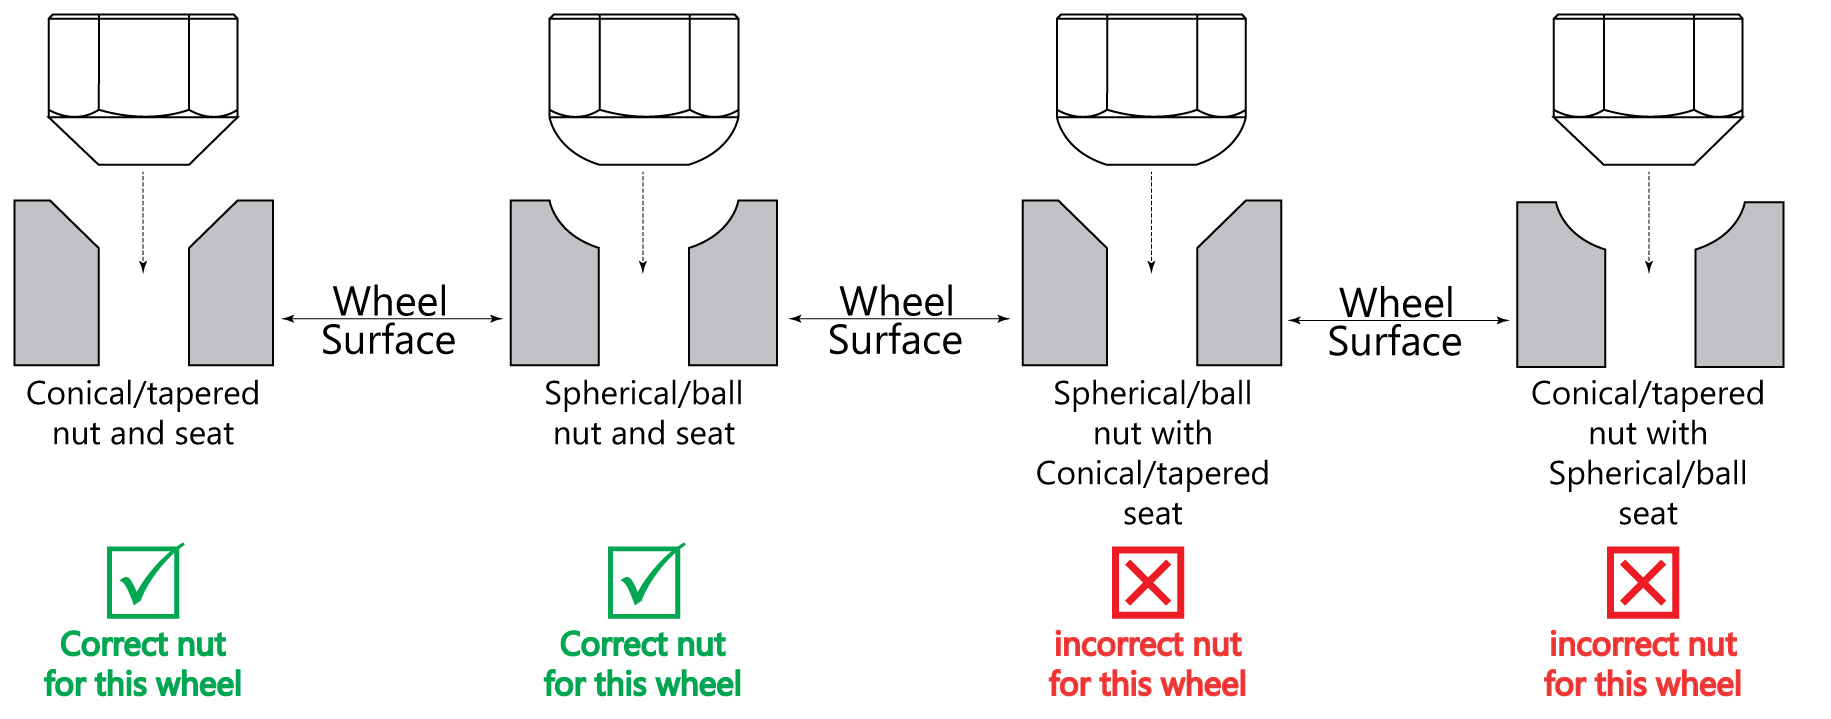 Image result for tapered lug nuts vs spherical ball seat